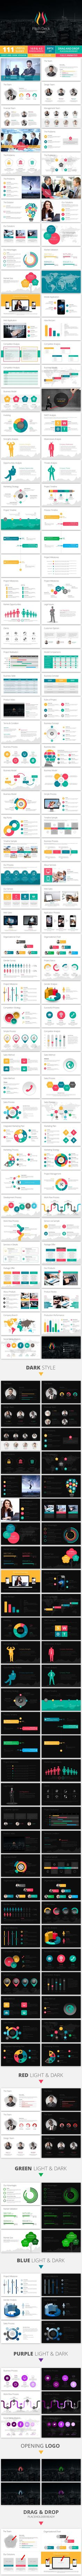 Startup Pitch Deck PowerPoint Template #design Download: http://graphicriver.net/item/startup-pitch-deck-powerpoint/13092982?ref=ksioks